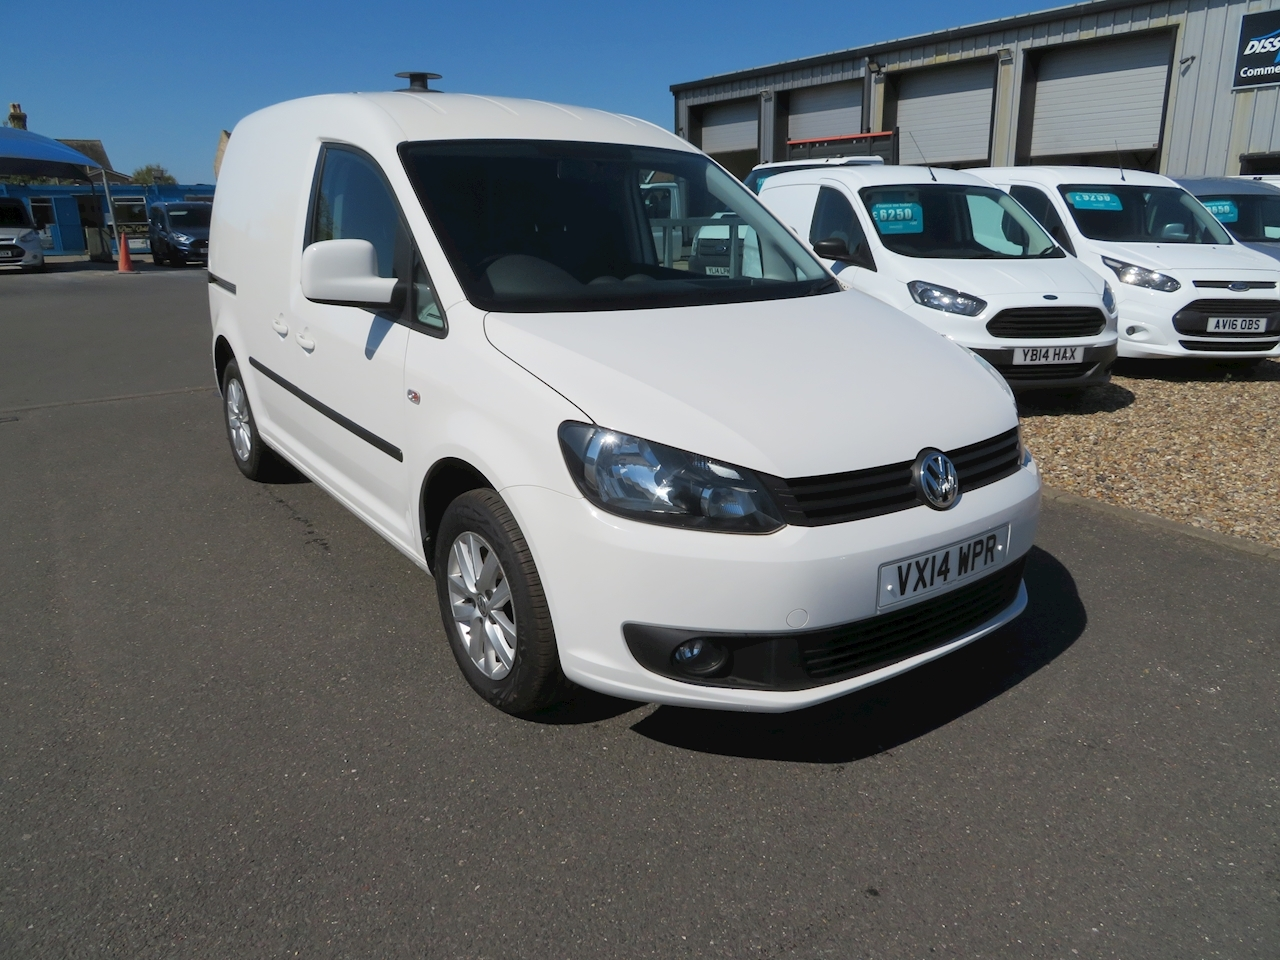 Caddy C20 Tdi Bmt Highline Panel Van 1.6 Manual Diesel